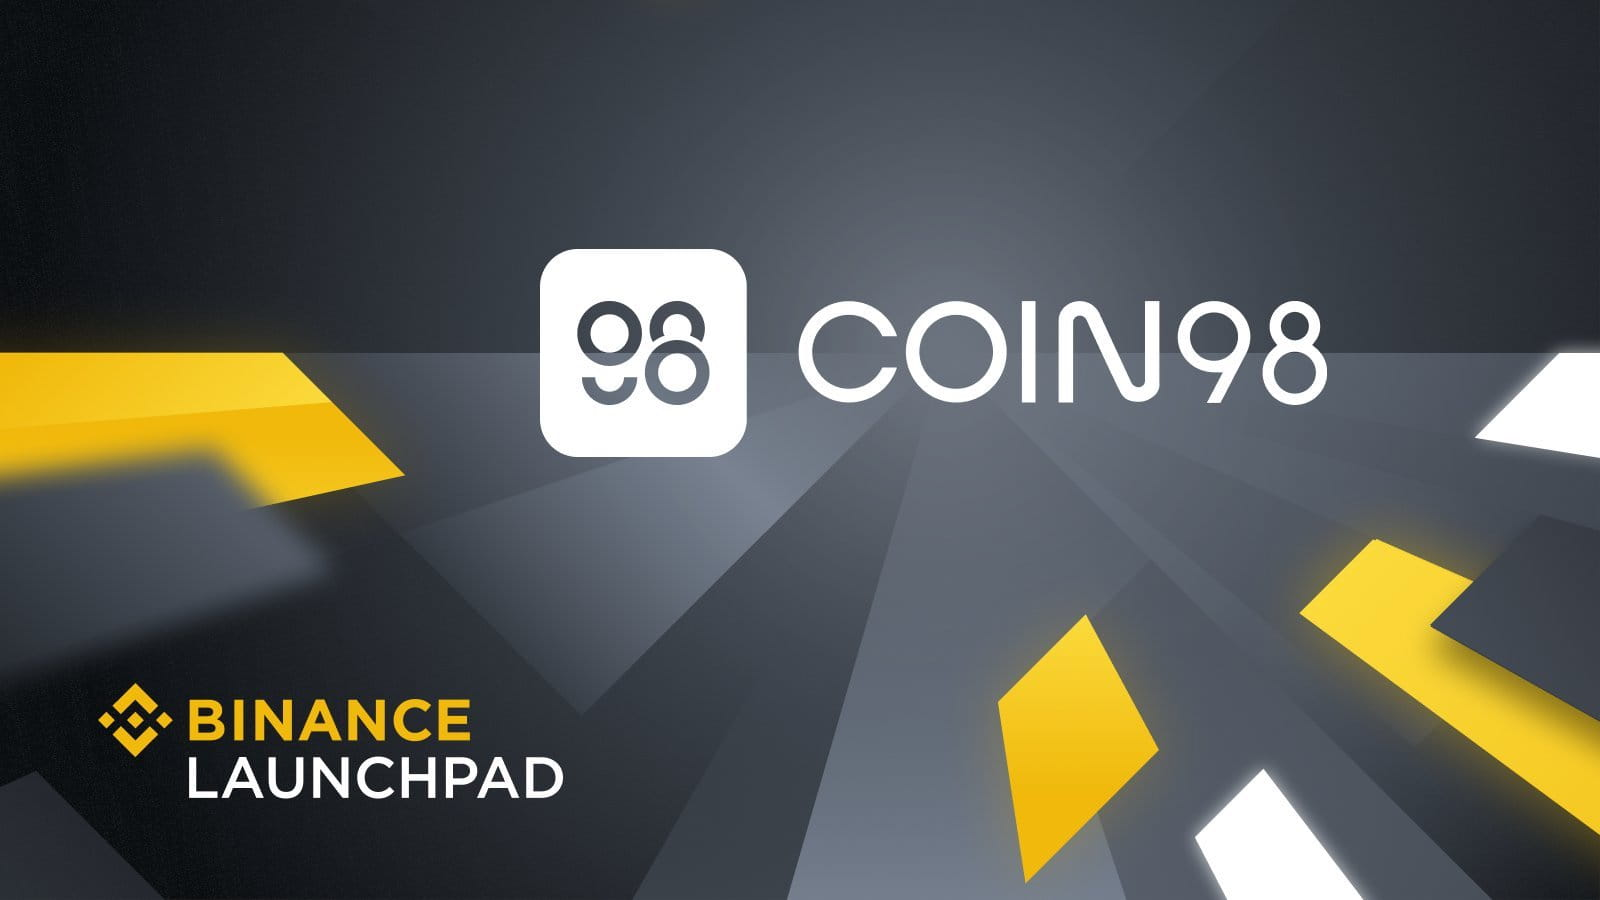 This Week at Binance: July 16 - 23, 2021Cryptocurrency Trading Signals, Strategies & Templates | DexStrats